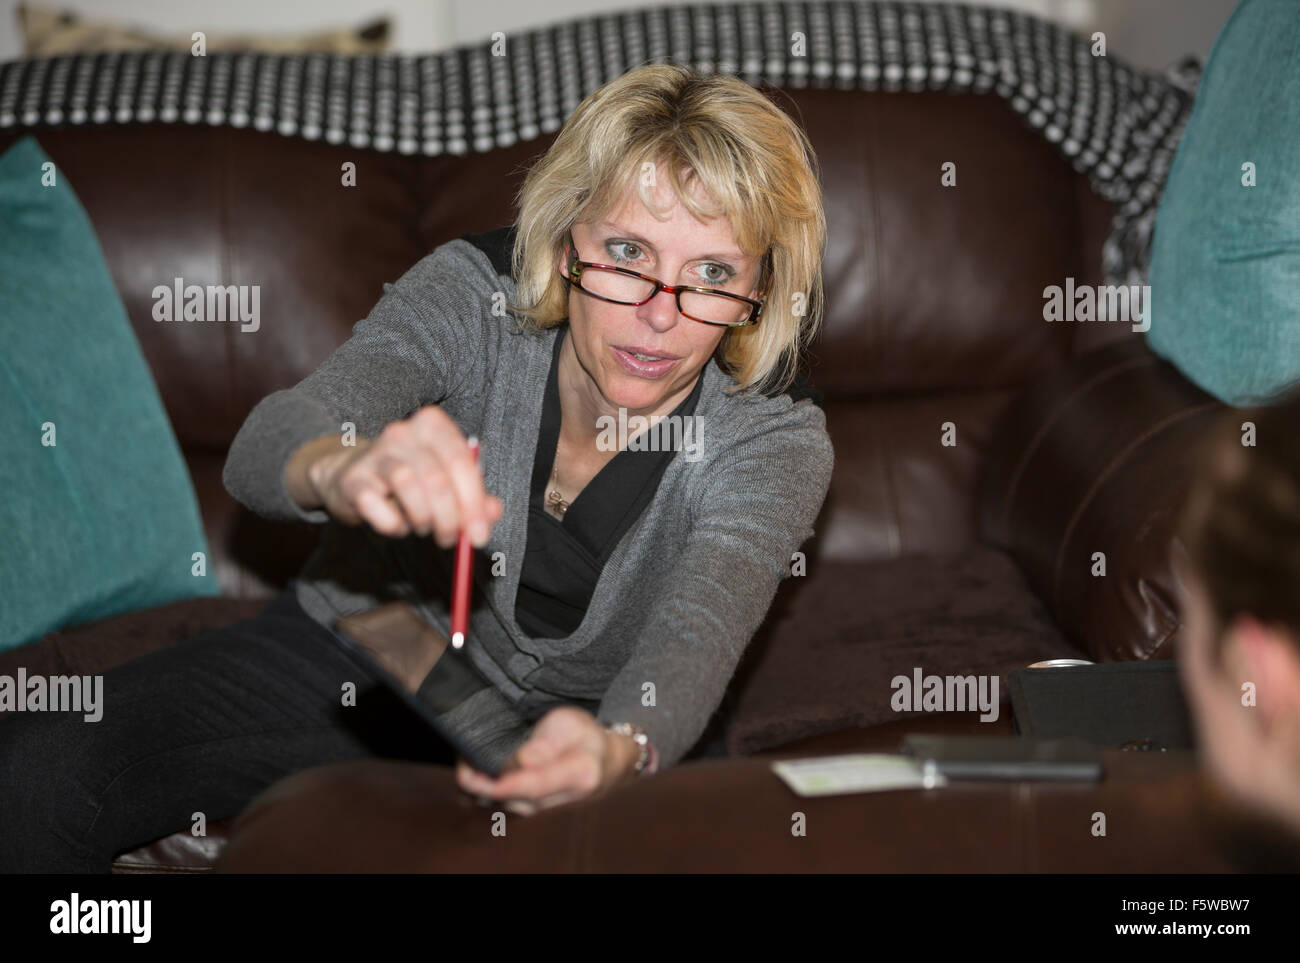 woman showing something on a digital tablet - Stock Image